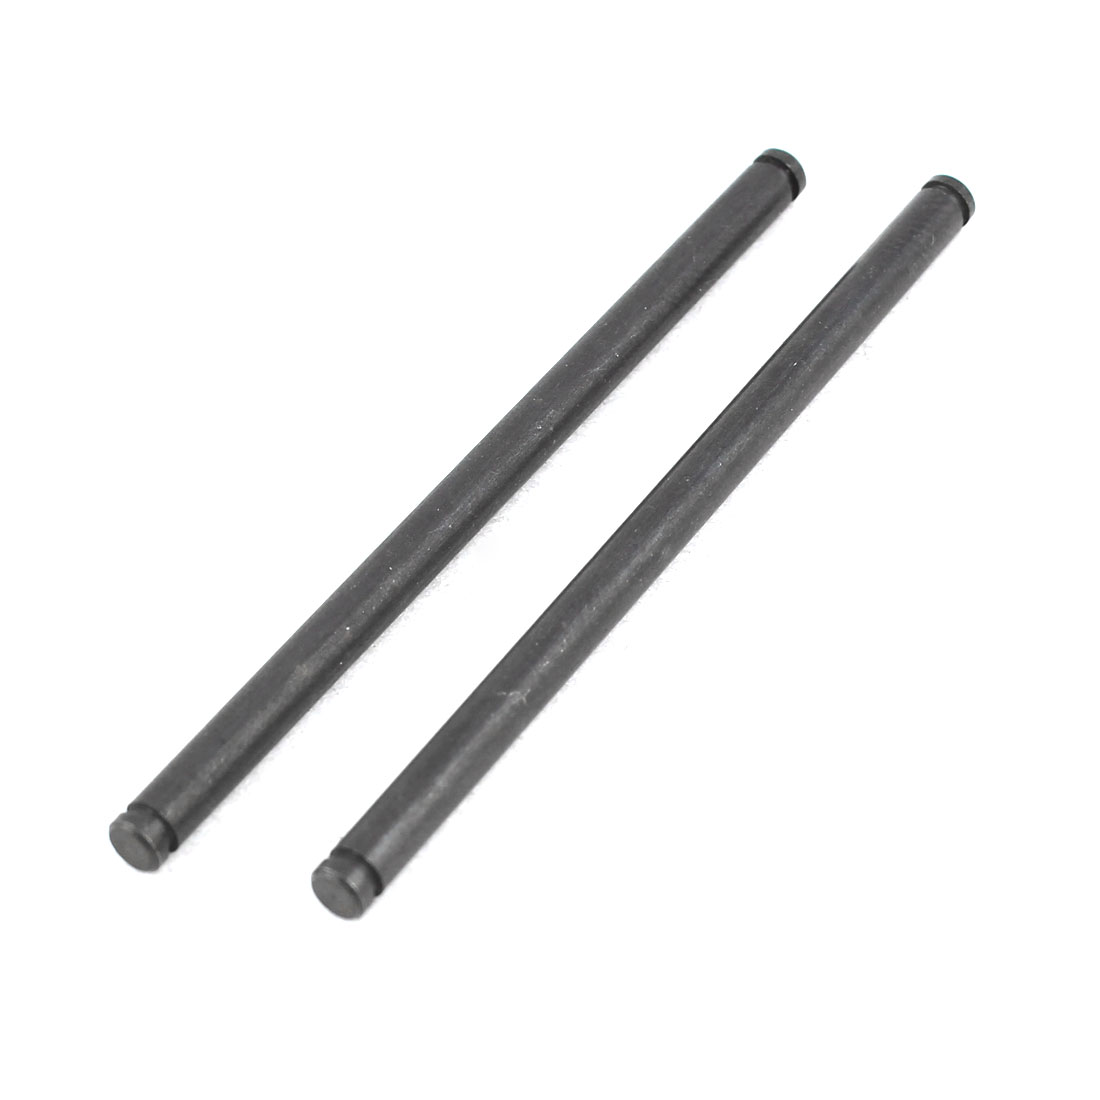 2pcs 02063 Rear Lower Arm Round Pin A Part for RC 1/10 Car Buggy Truck